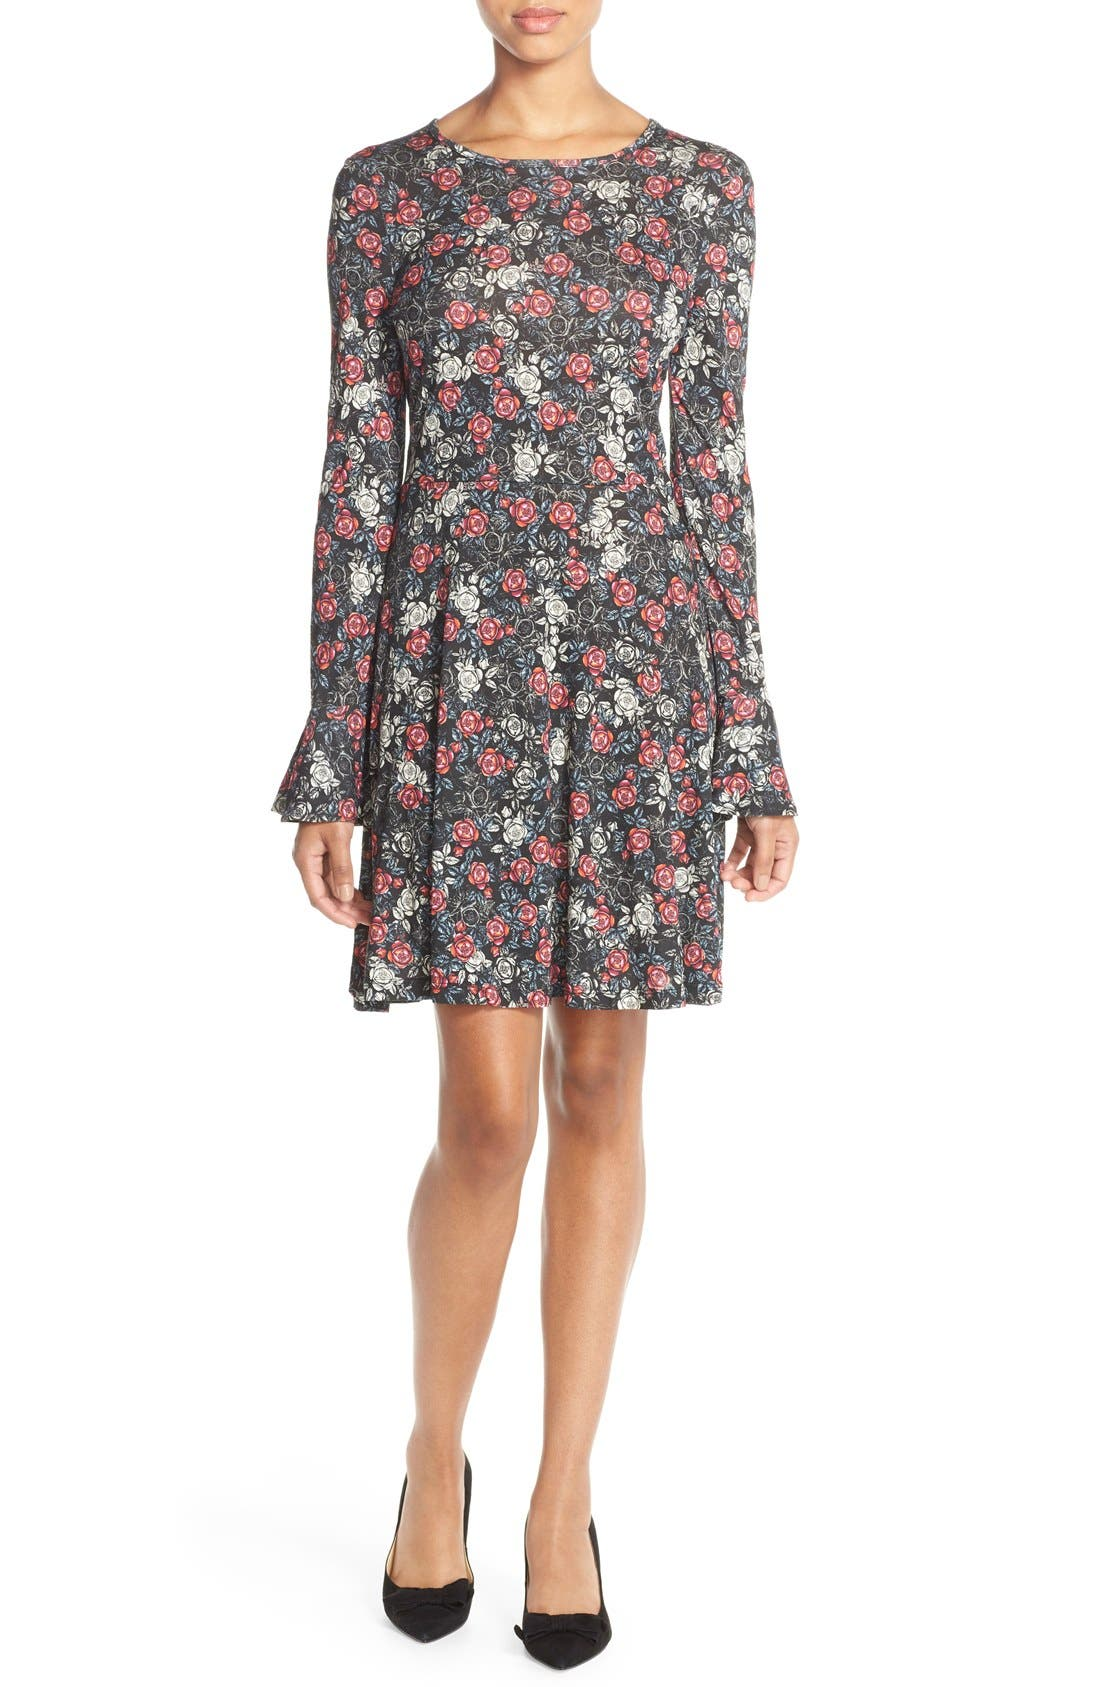 Alternate Image 1 Selected - French Connection Floral Print Jersey A-Line Dress